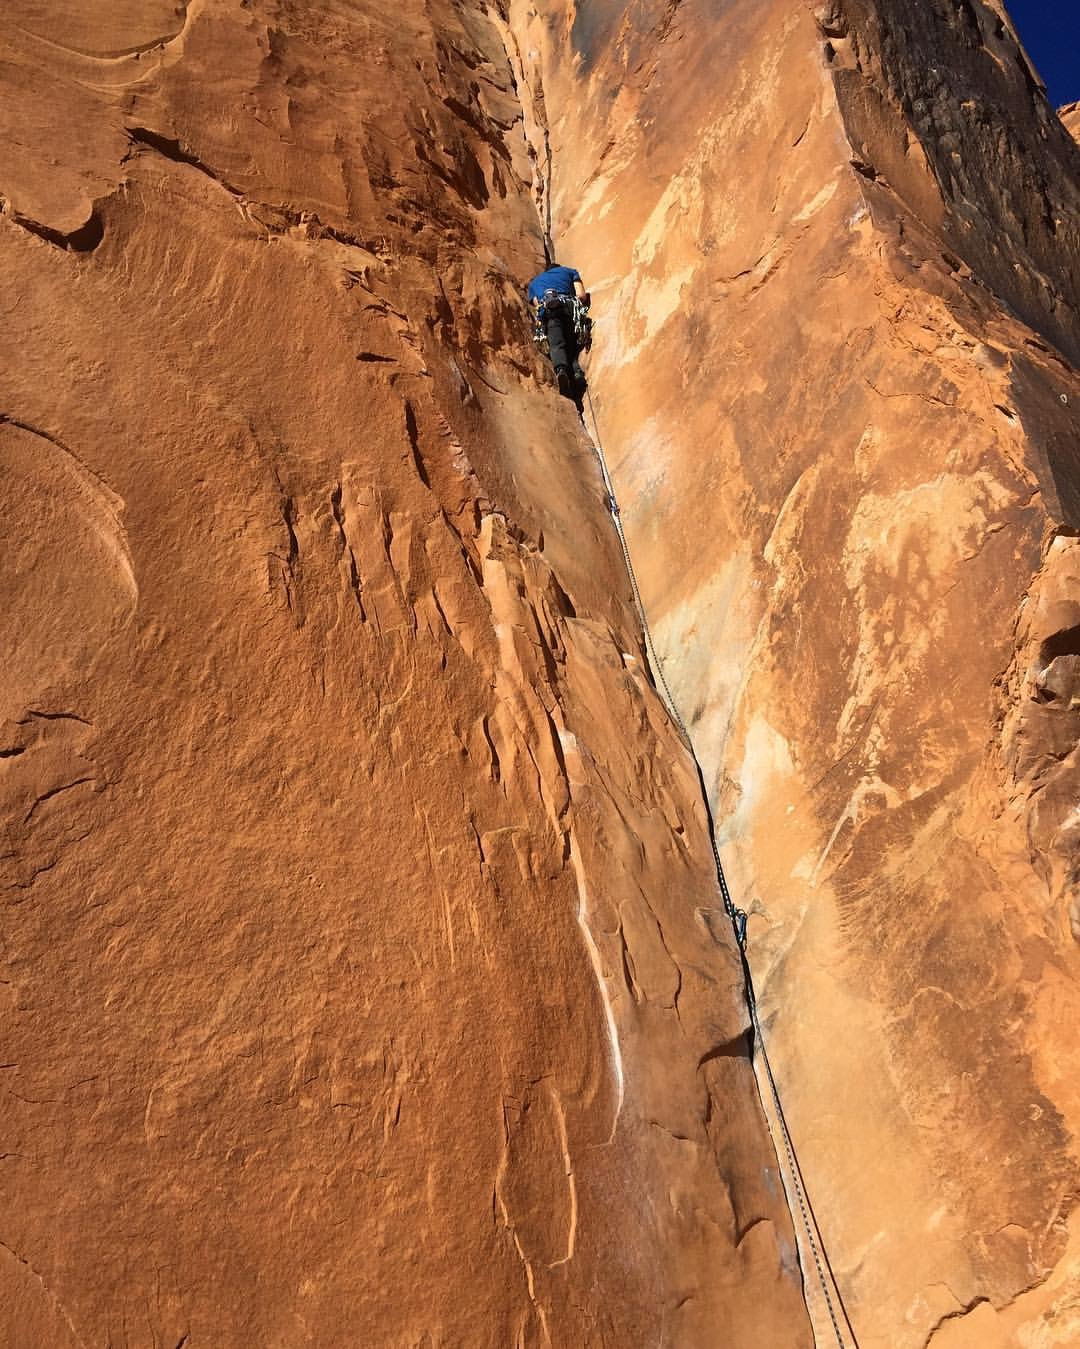 Rock Climbing - Guided climbs and instruction from beginner to advanced. Climbing venues include Moab and Salt Lake City.Learn more ➝